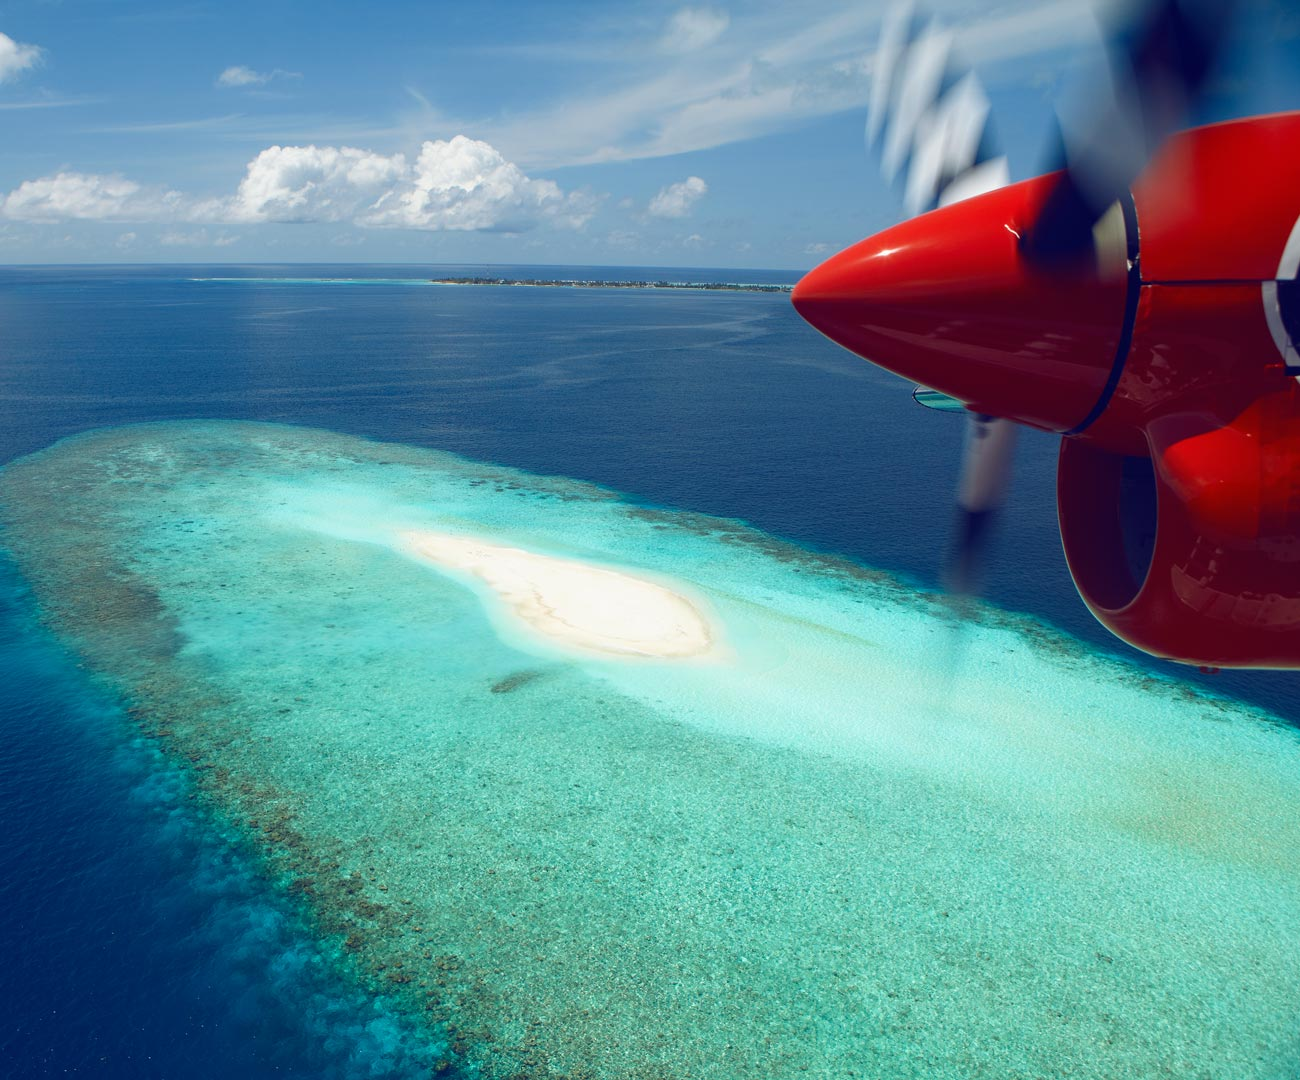 Maldives Island Excursions | Seaplane Photo Flight Image | Kurumba Maldives